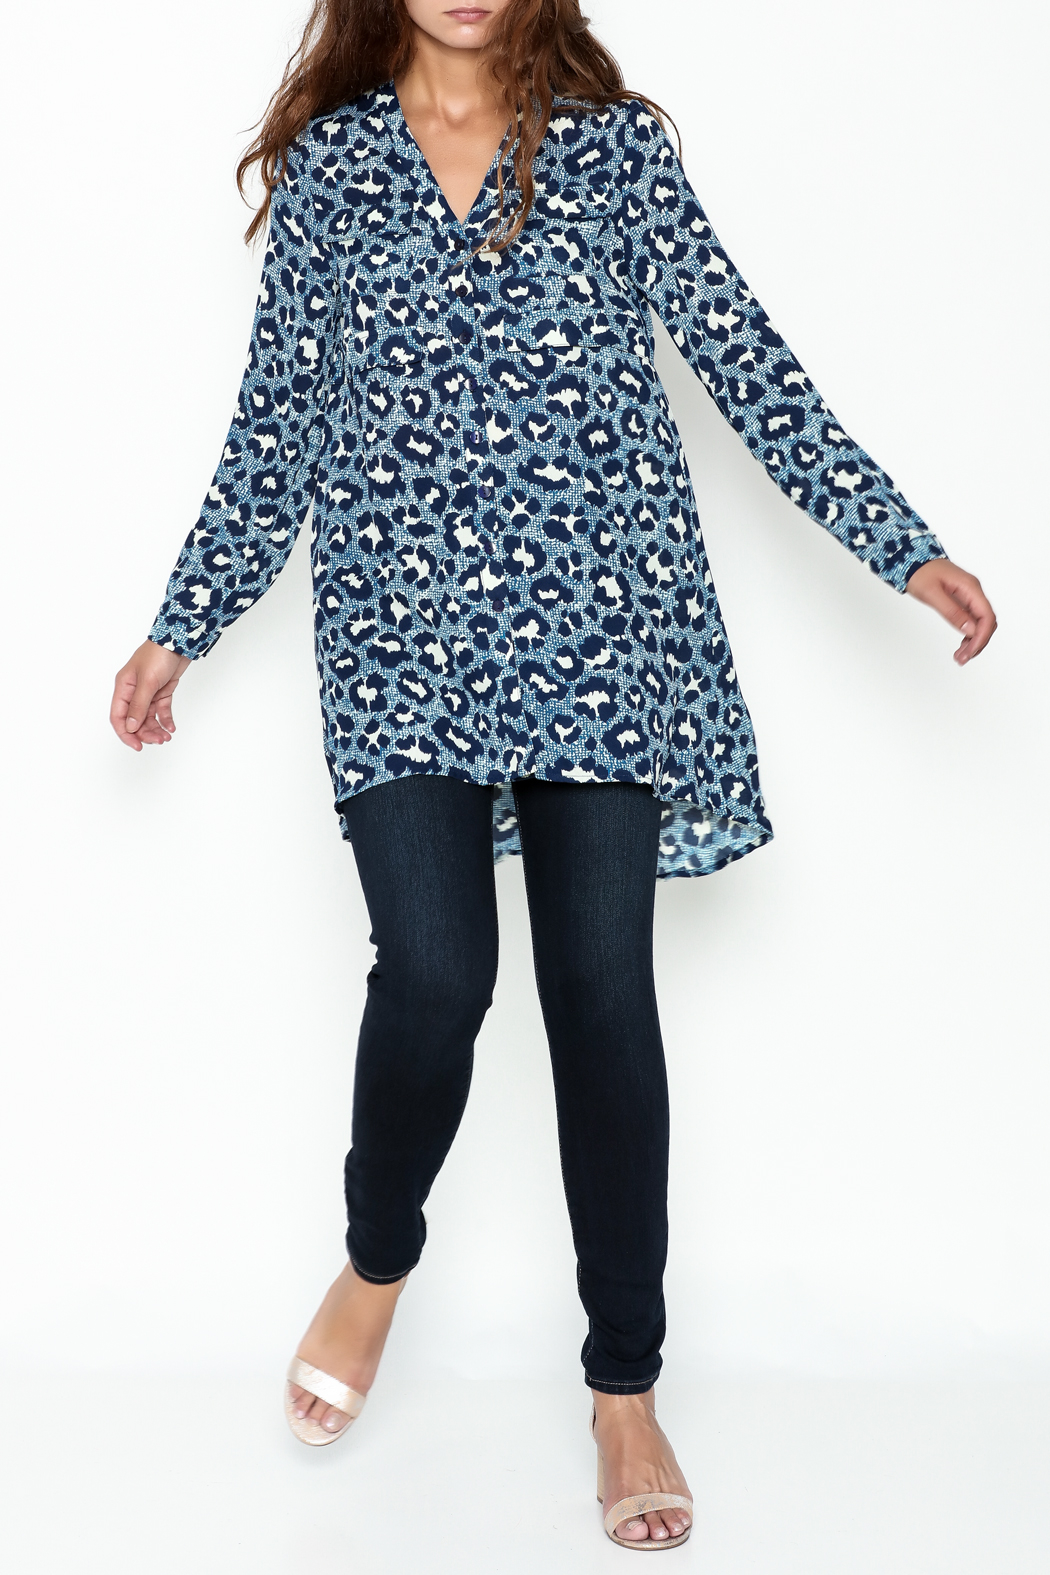 JoyJoy Leopard Tunic - Side Cropped Image